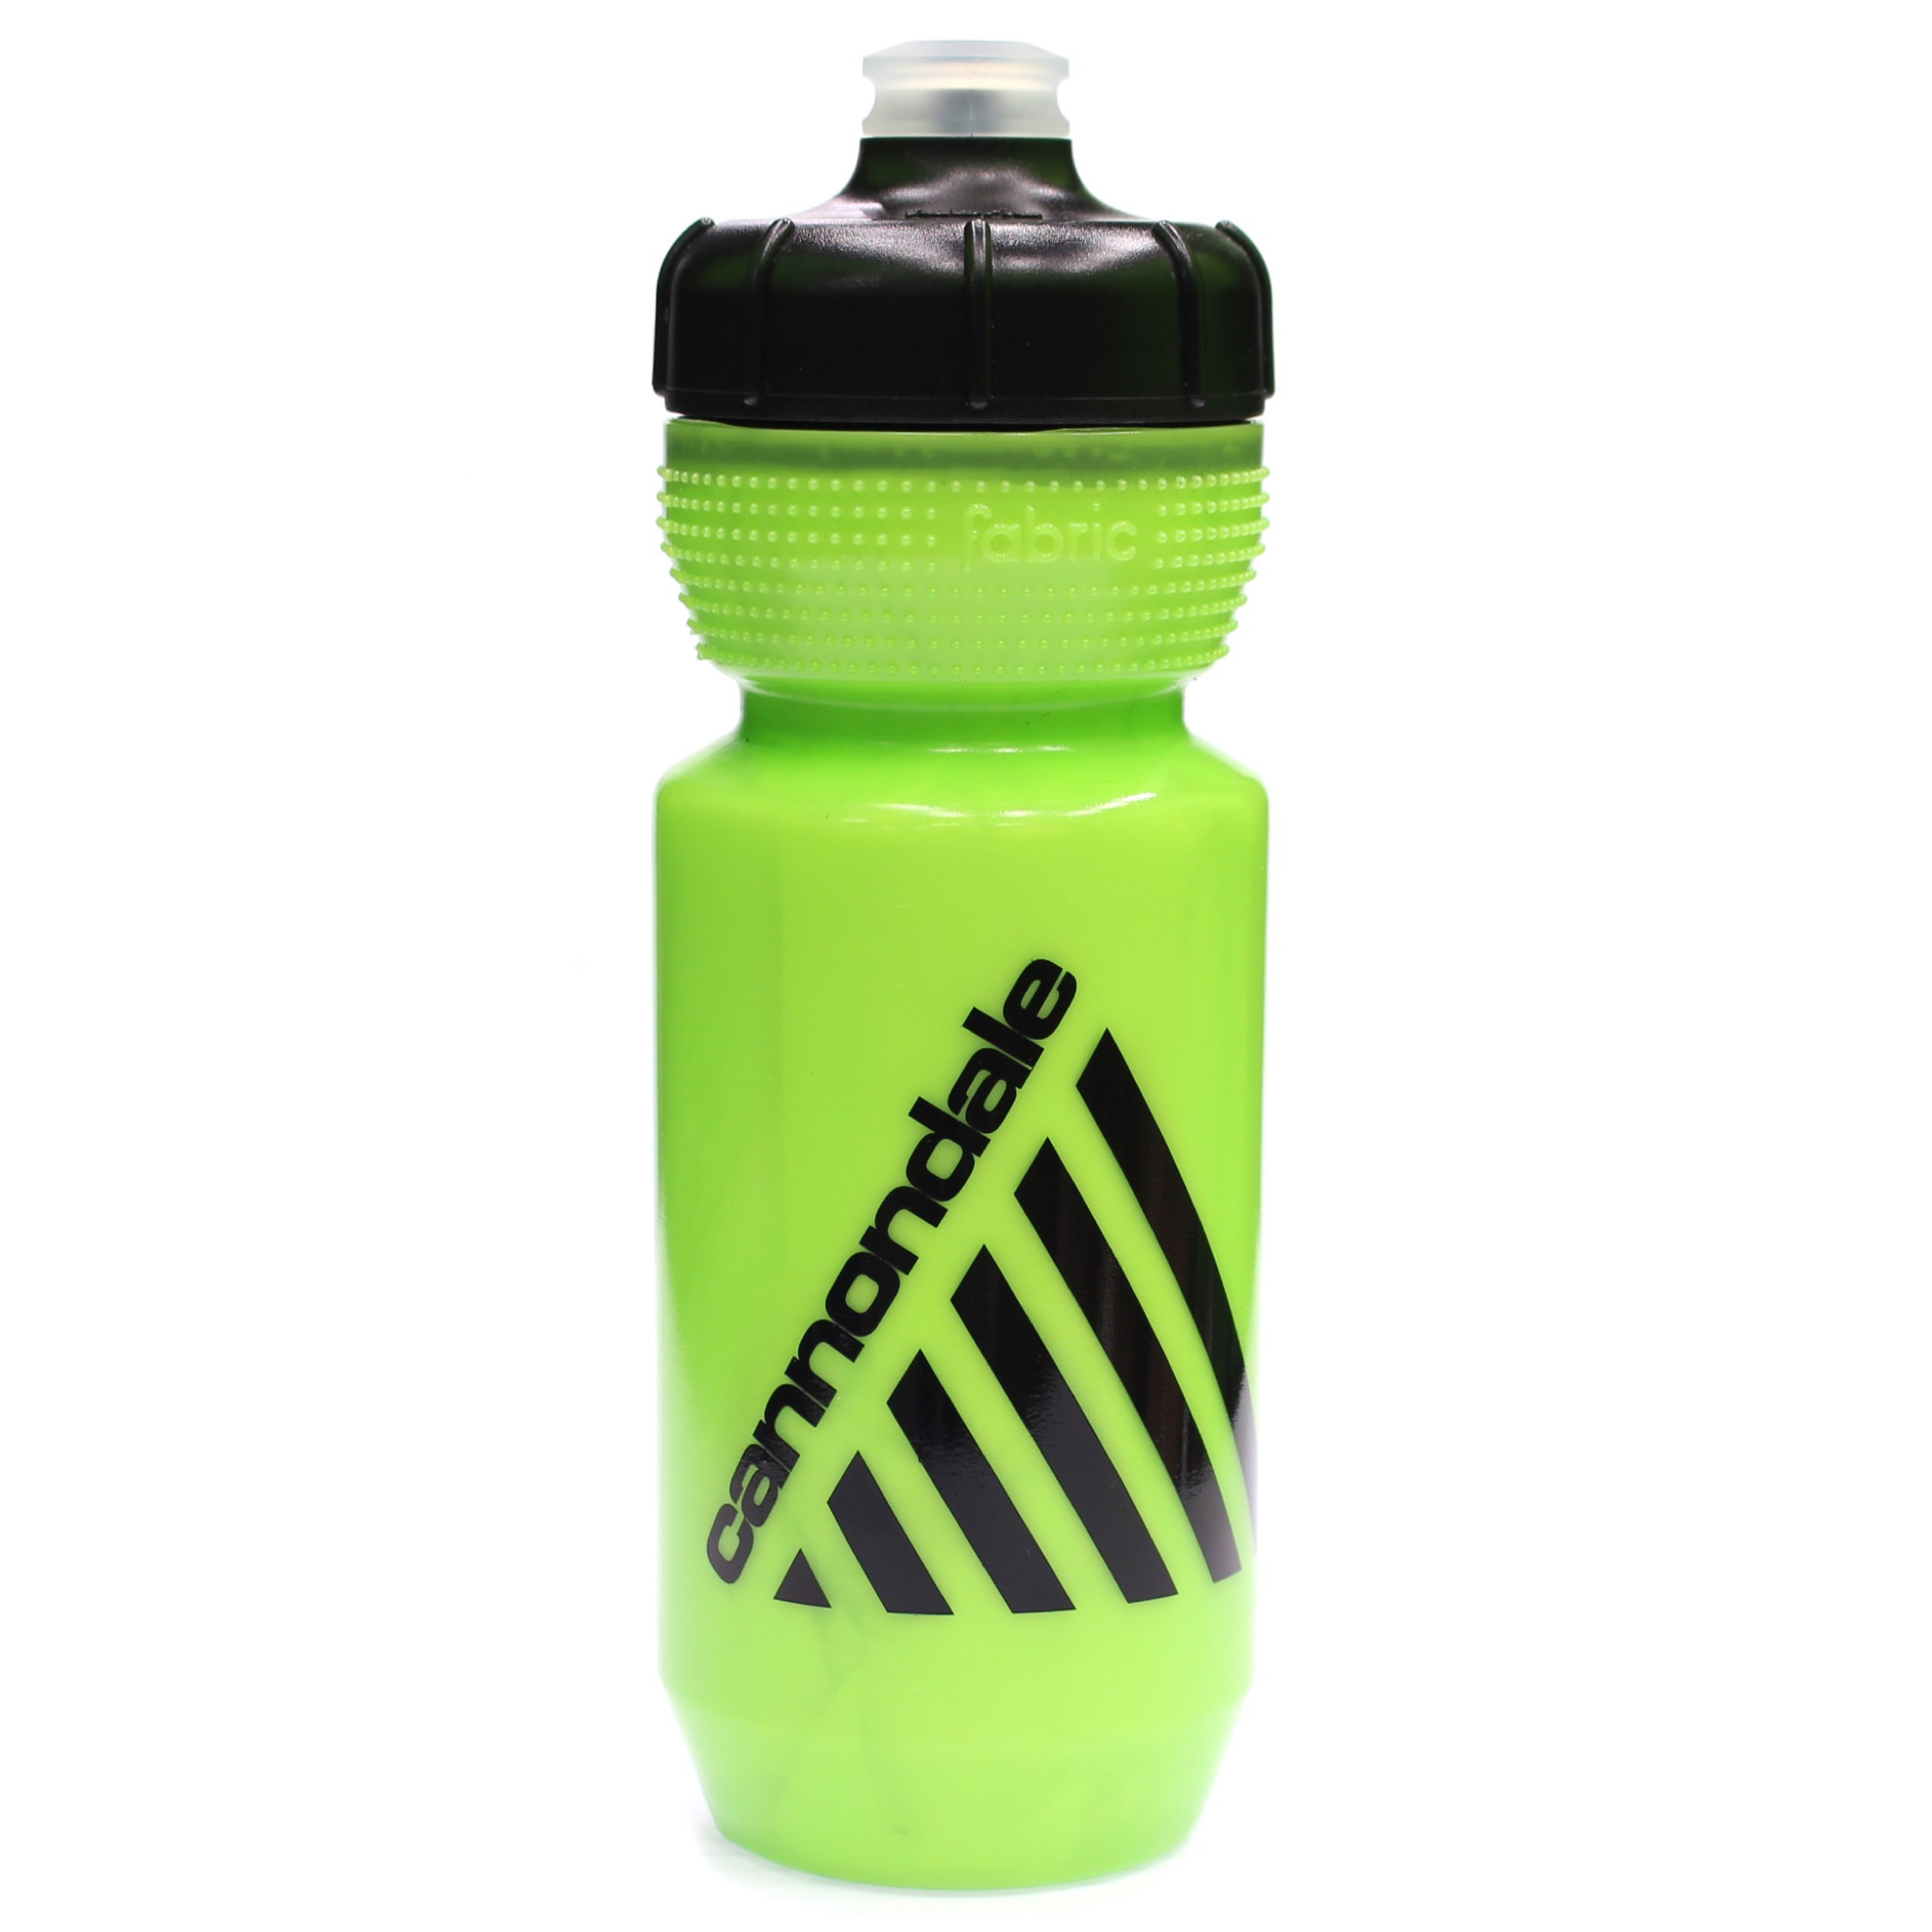 Cannondale Gripper isolé Logo Vert Bouteille 650 Ml CP5209U3065